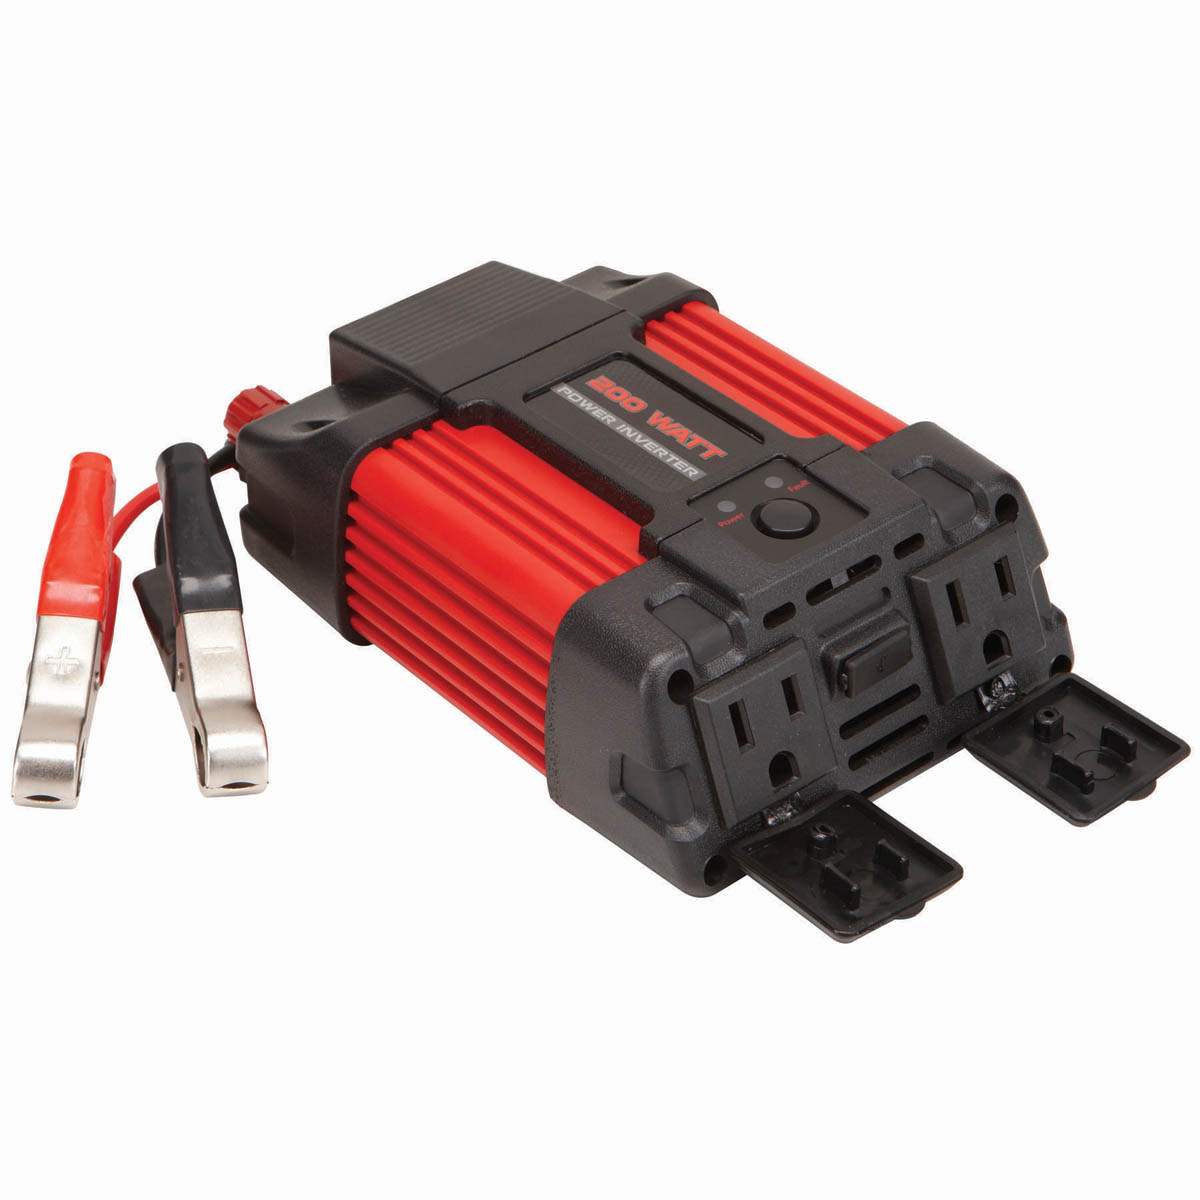 200 Watt Continuous/400 Watt Peak Power Inverter